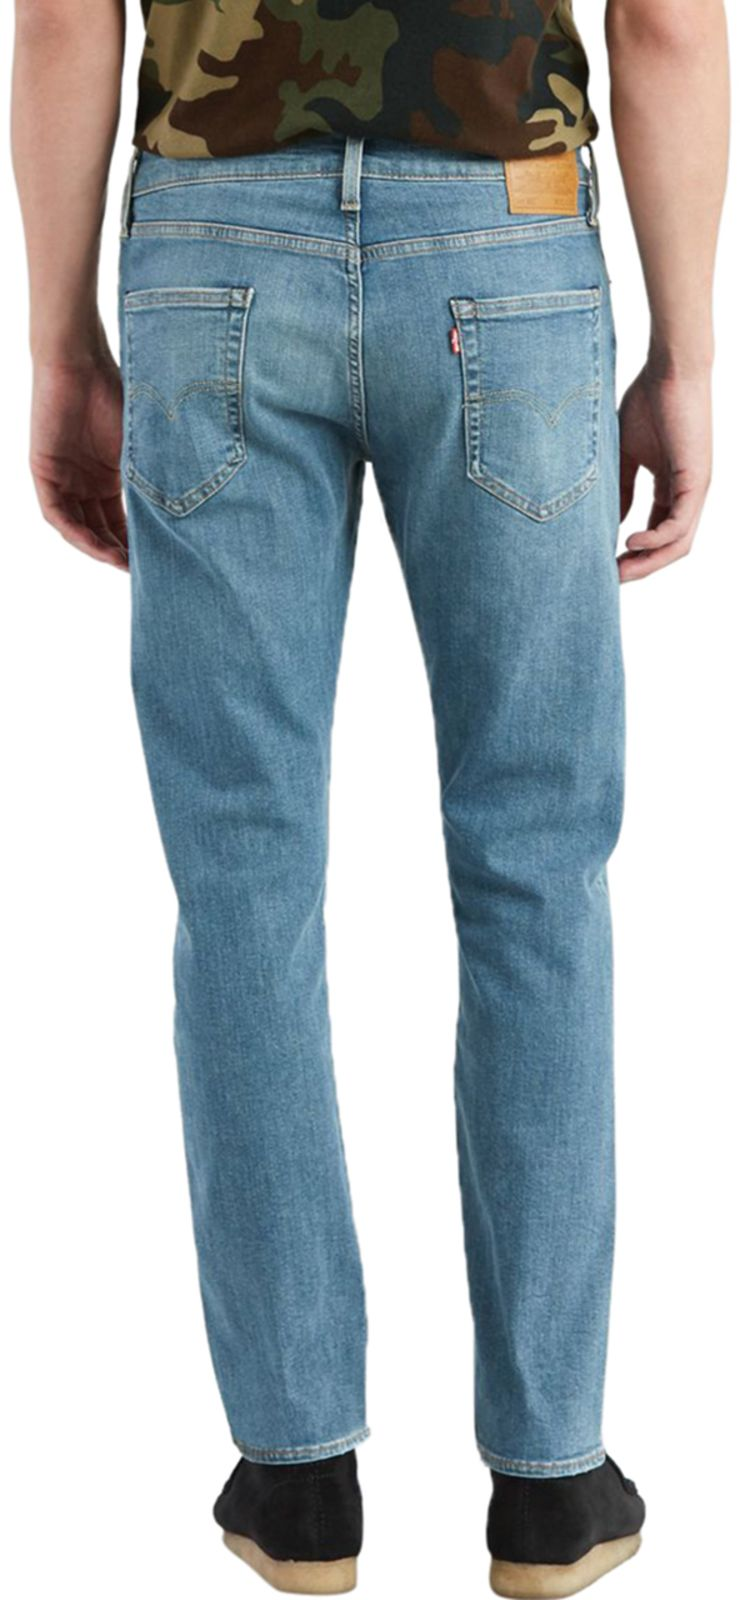 Levi's 502 Regular Denim Jeans Blue